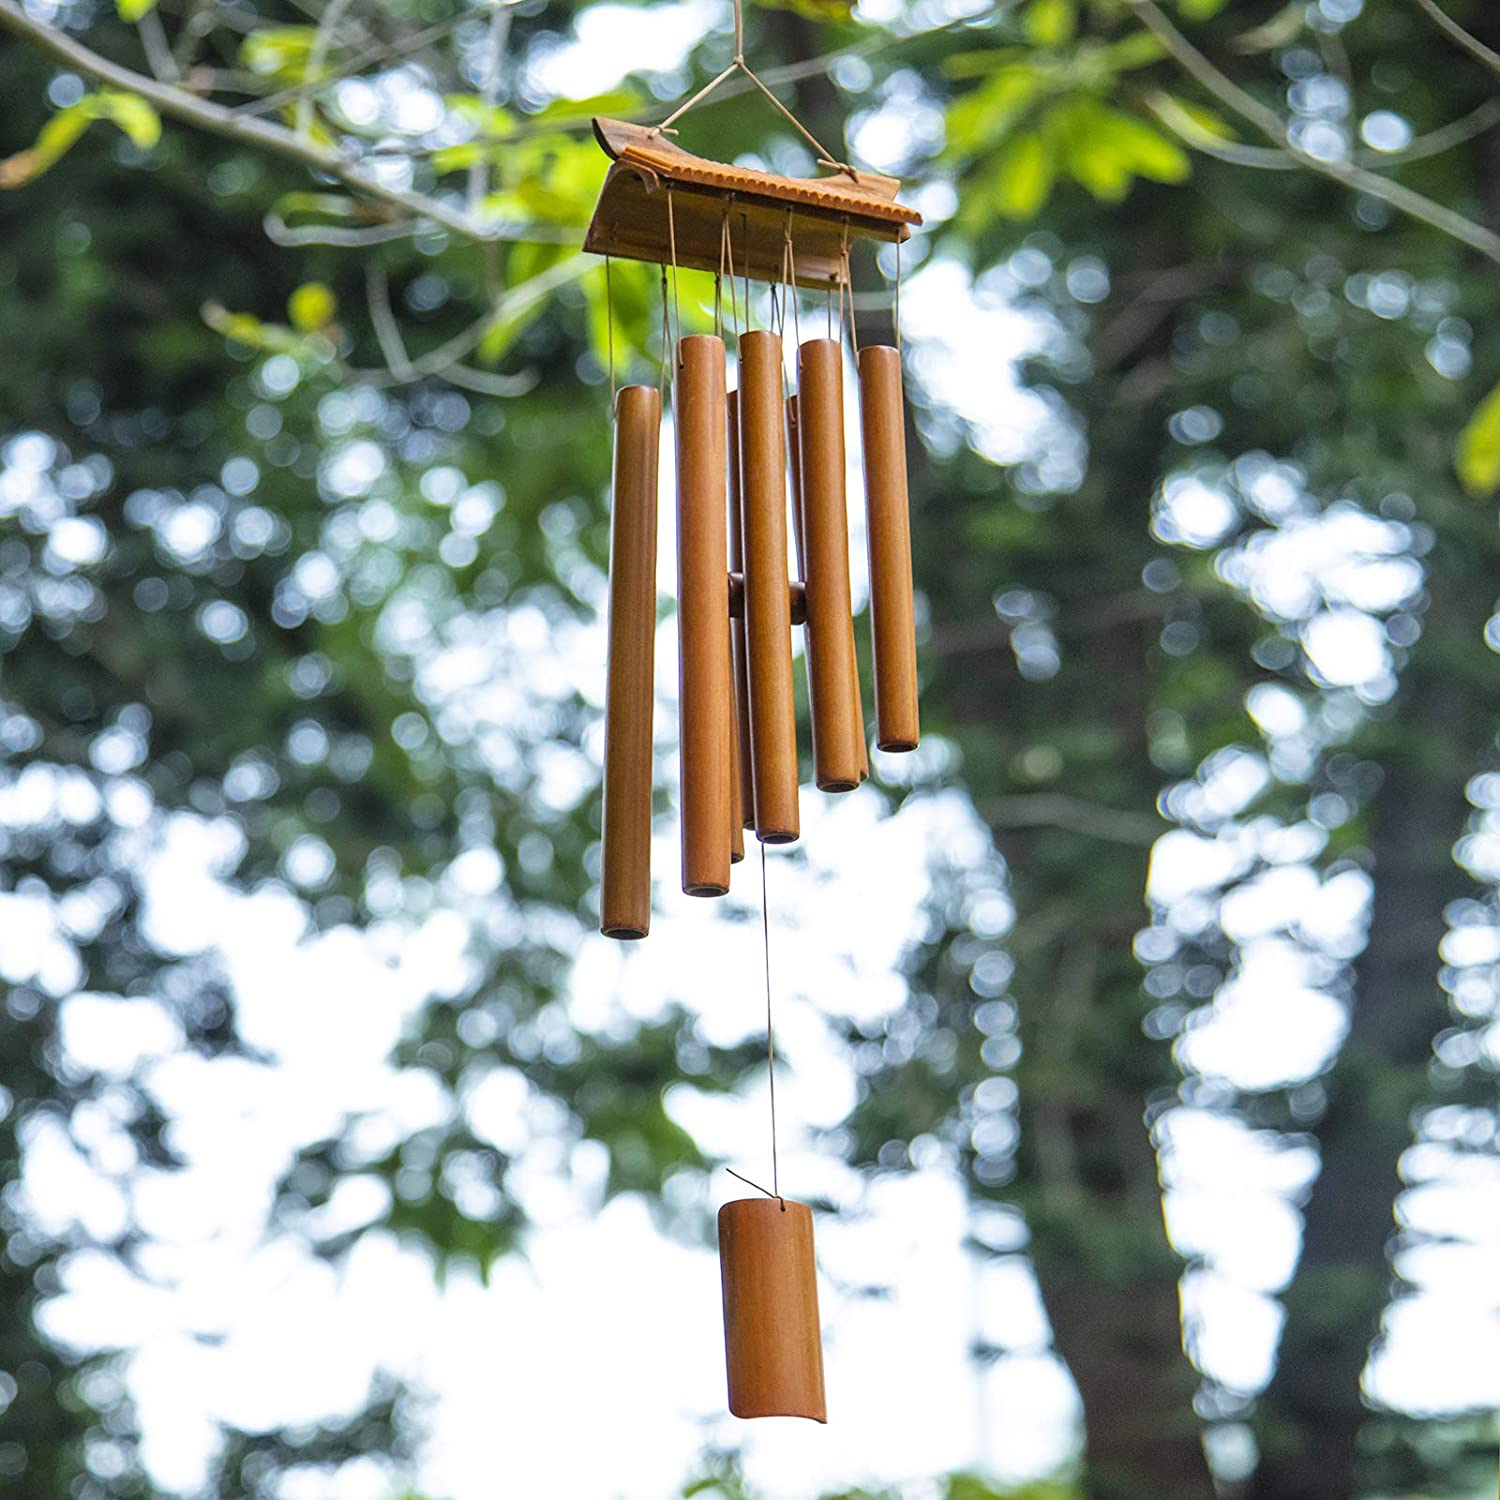 Bamboo Wind Chimes Outdoor - Music Wind Chime with Rotating Hook, Handmade Craft Decor for Garden, Patio, Home or Outdoor(Bamboo Pavilion)